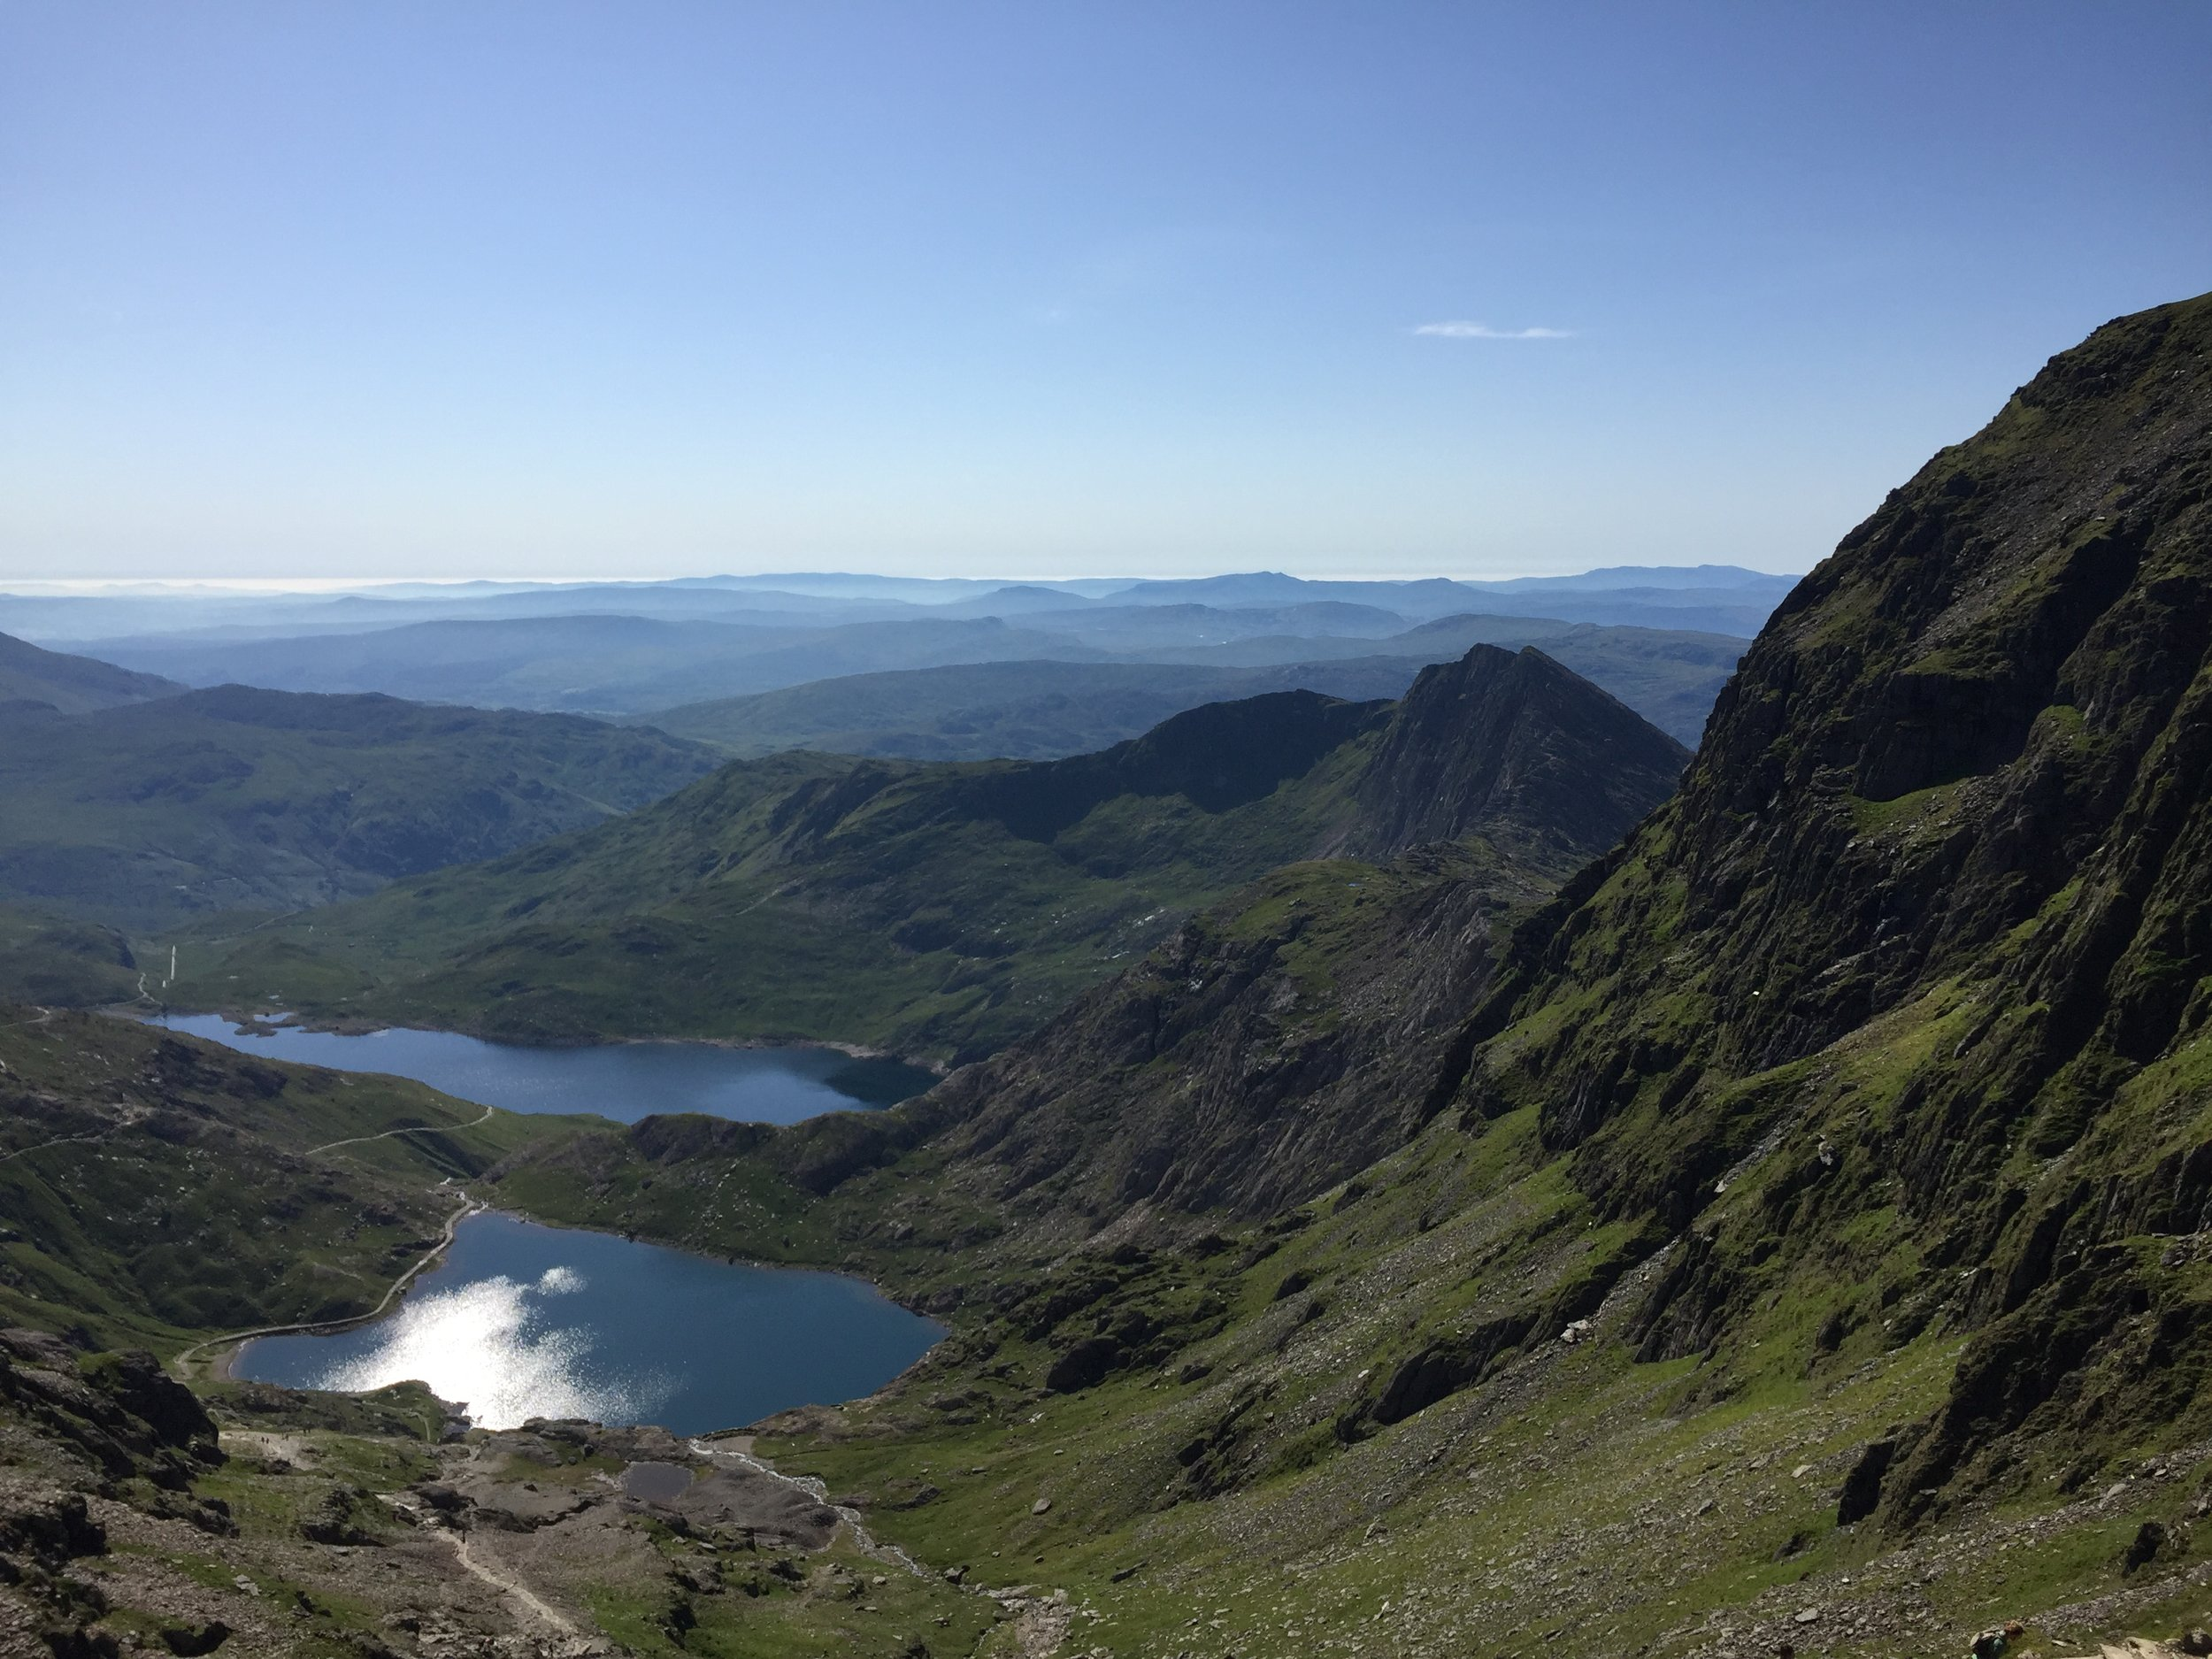 Snowdonia in the sunshine…Could it get much better?